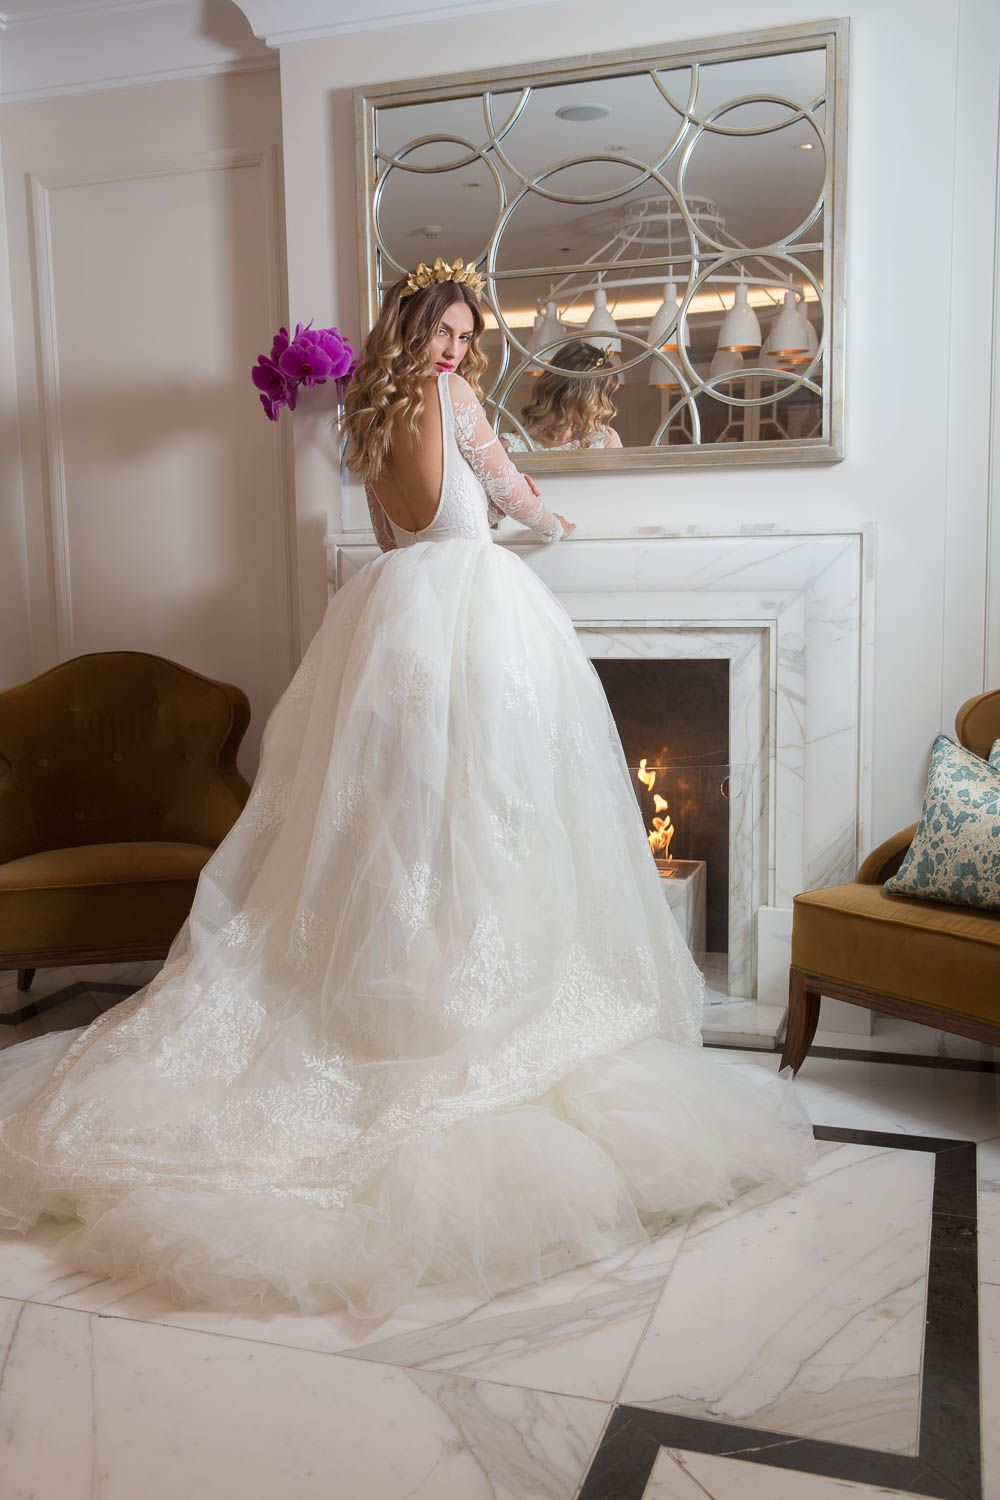 Wedding dress trunk show  Trunk Show  Eternal Bridal  Australia Sydney for Galia Lahav